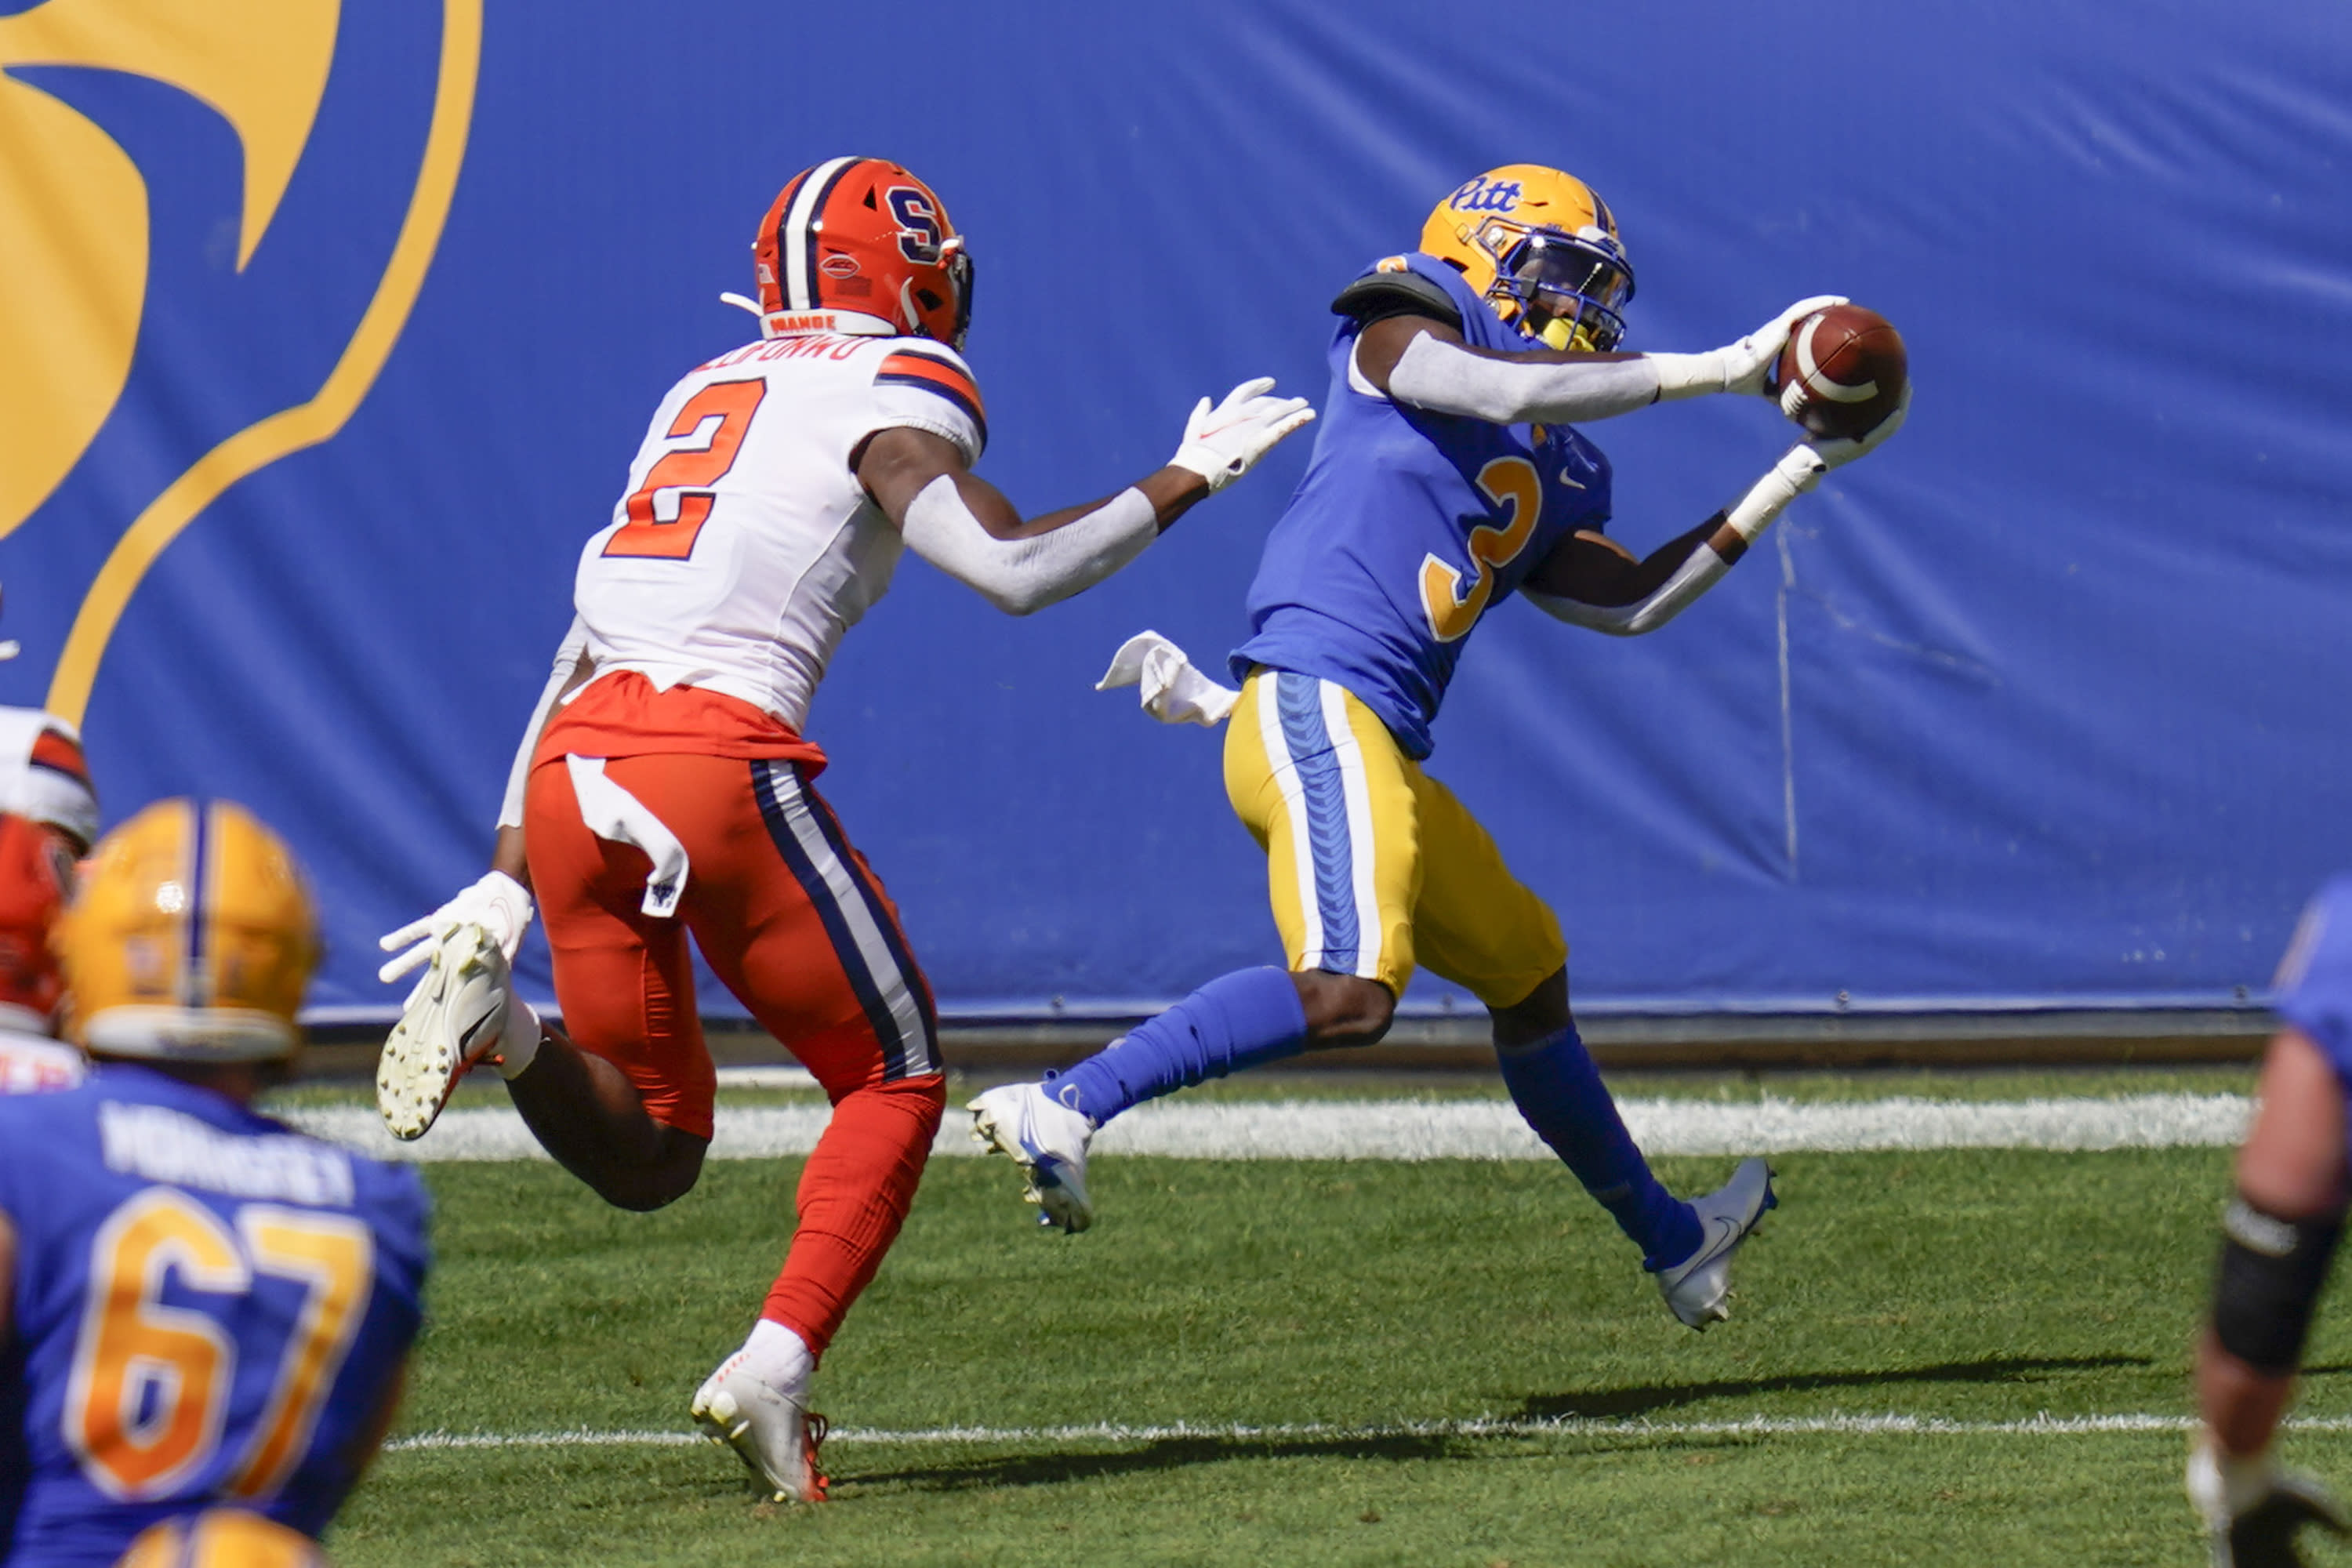 Pittsburgh wide receiver Jordan Addison (3) makes a touchdown reception ahead of Syracuse defensive back Ifeatu Melifonwu (2) during the first half of an NCAA college football game, Saturday, Sept. 19, 2020, in Pittsburgh. (AP Photo/Keith Srakocic)